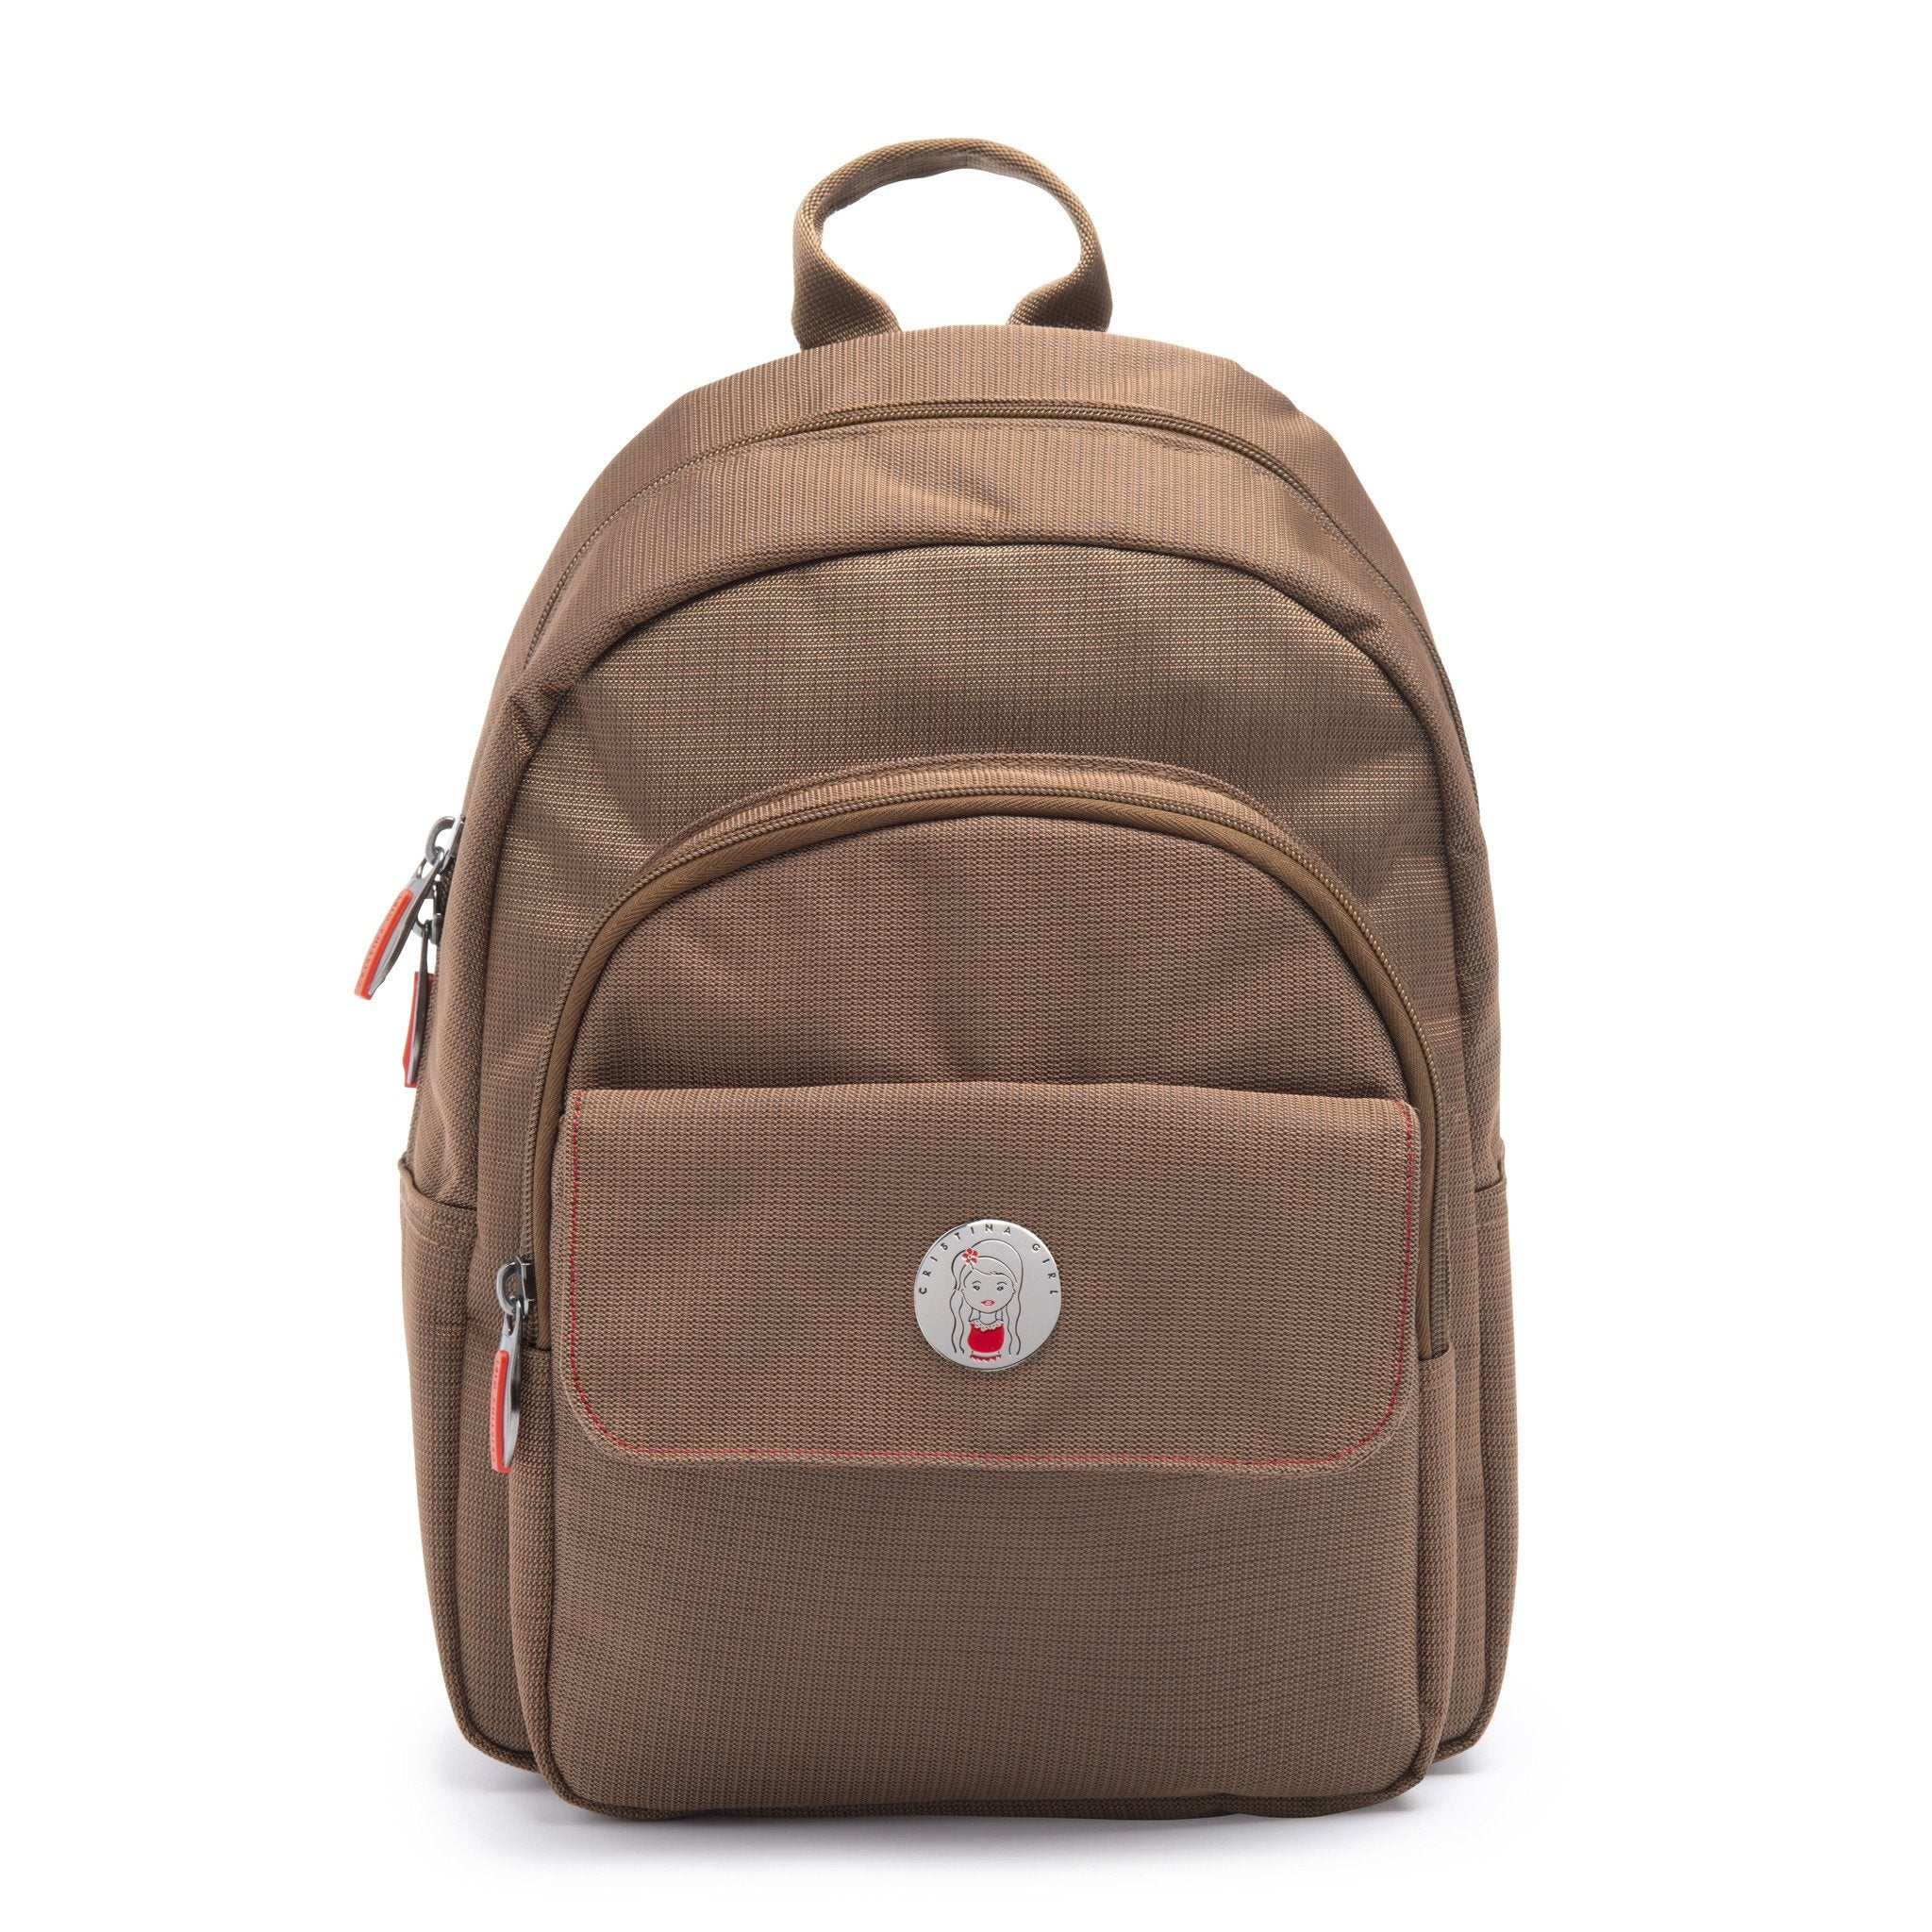 Cristina Girl Mini Backpack Nylon Koko Collection - Caramel